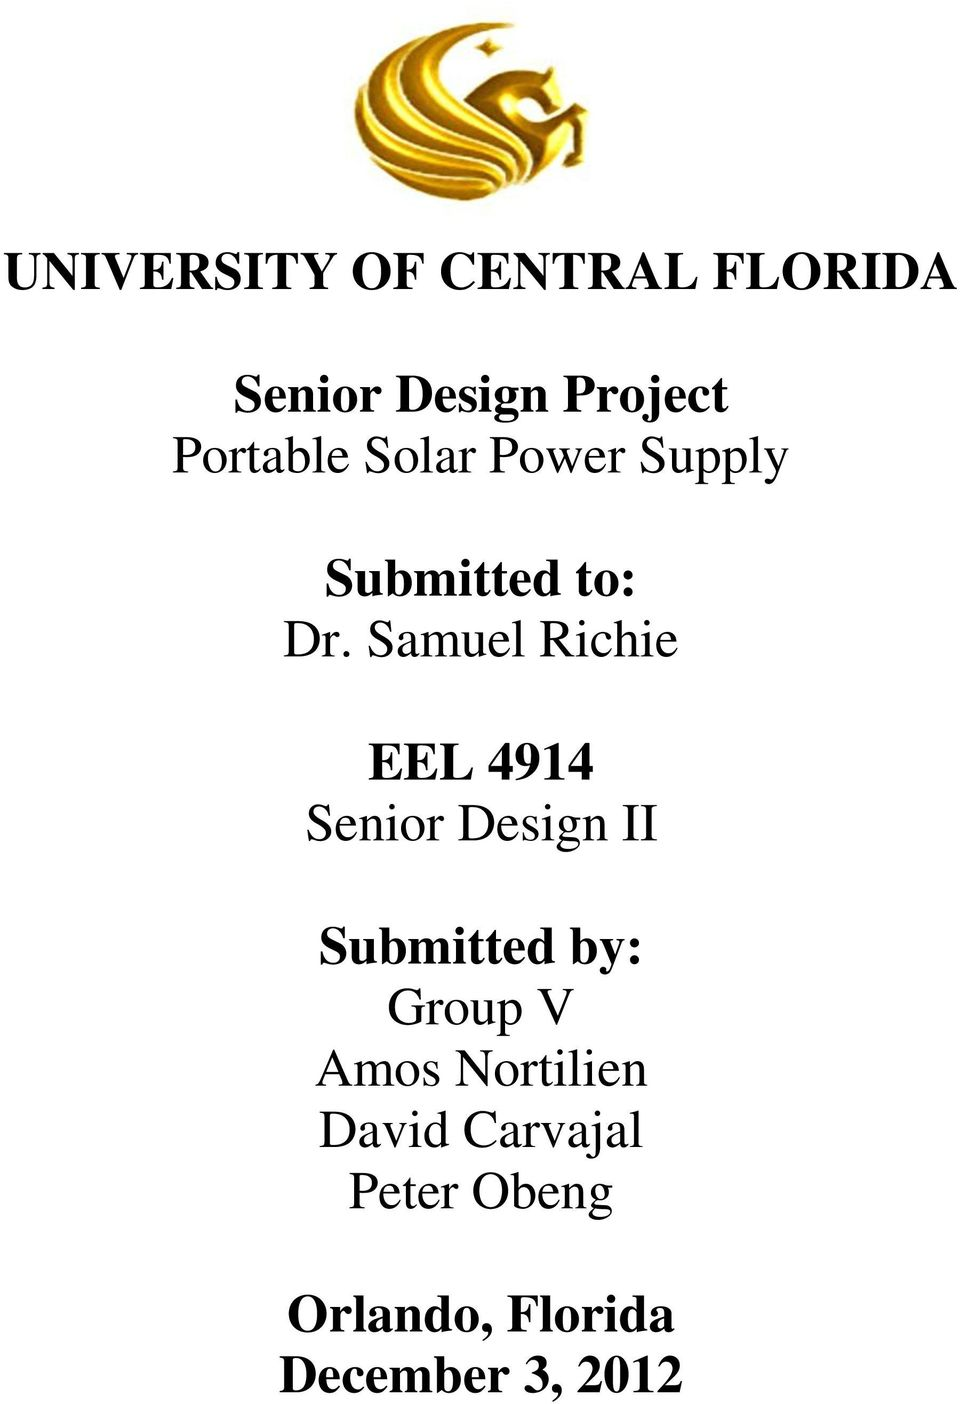 University Of Central Florida Senior Design Project Portable Solar 555 Timer Projects Buck Converter Using Ne555 31 Samuel Richie Eel 4914 Ii Submitted By